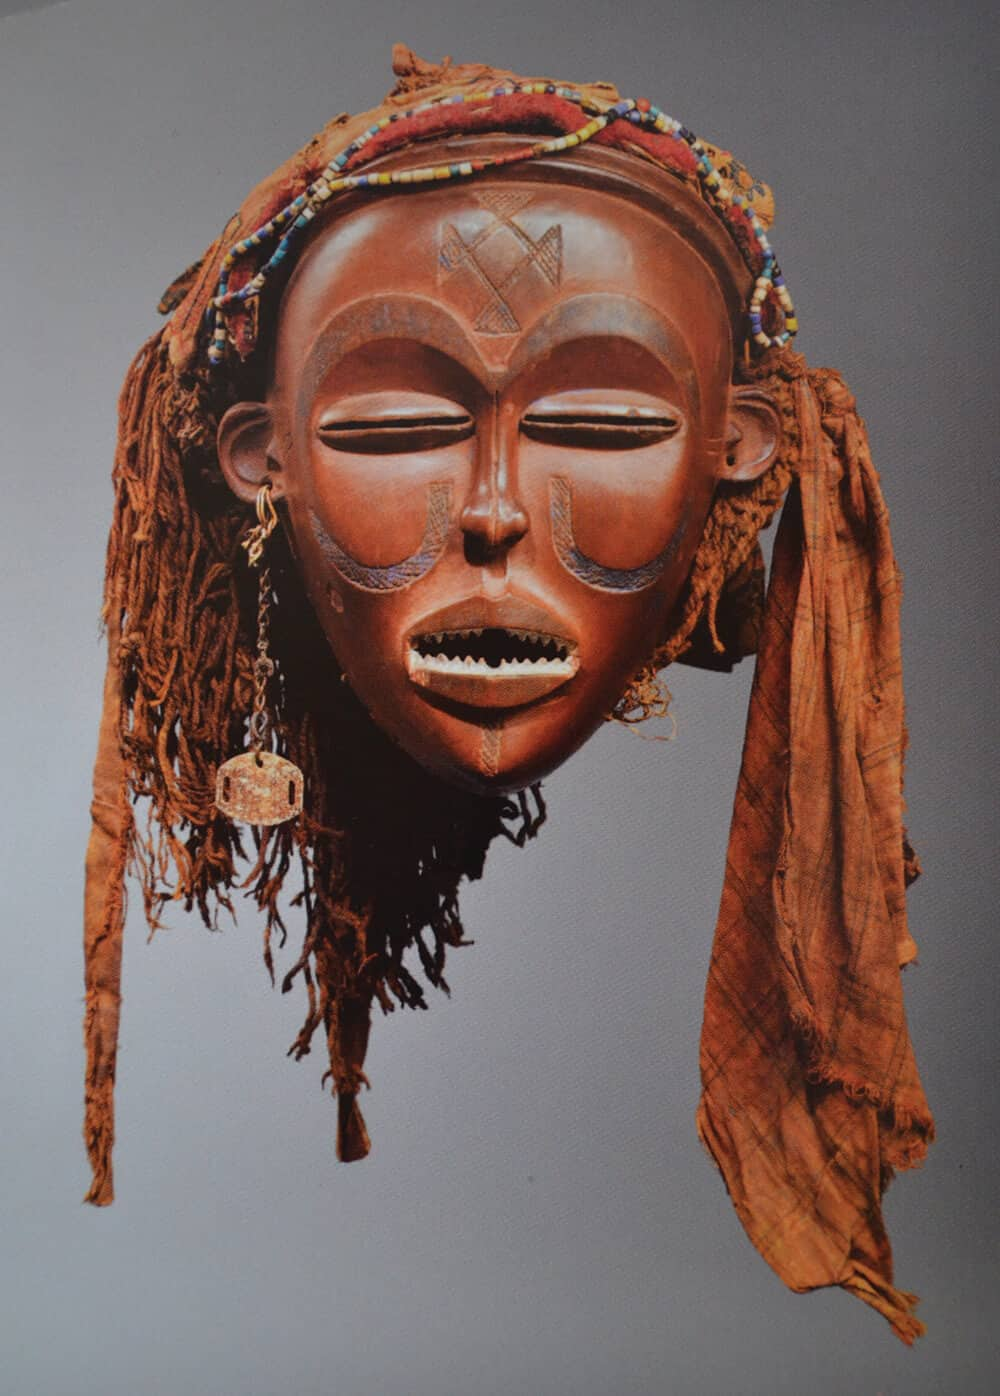 Mwana Pwo Mask Three (Chokwe) D.R.Congo / Angola, wood, c. end of the 19th century to the beginning of the 20th century. Image courtesy of  Fundação Sindika Dokolo.